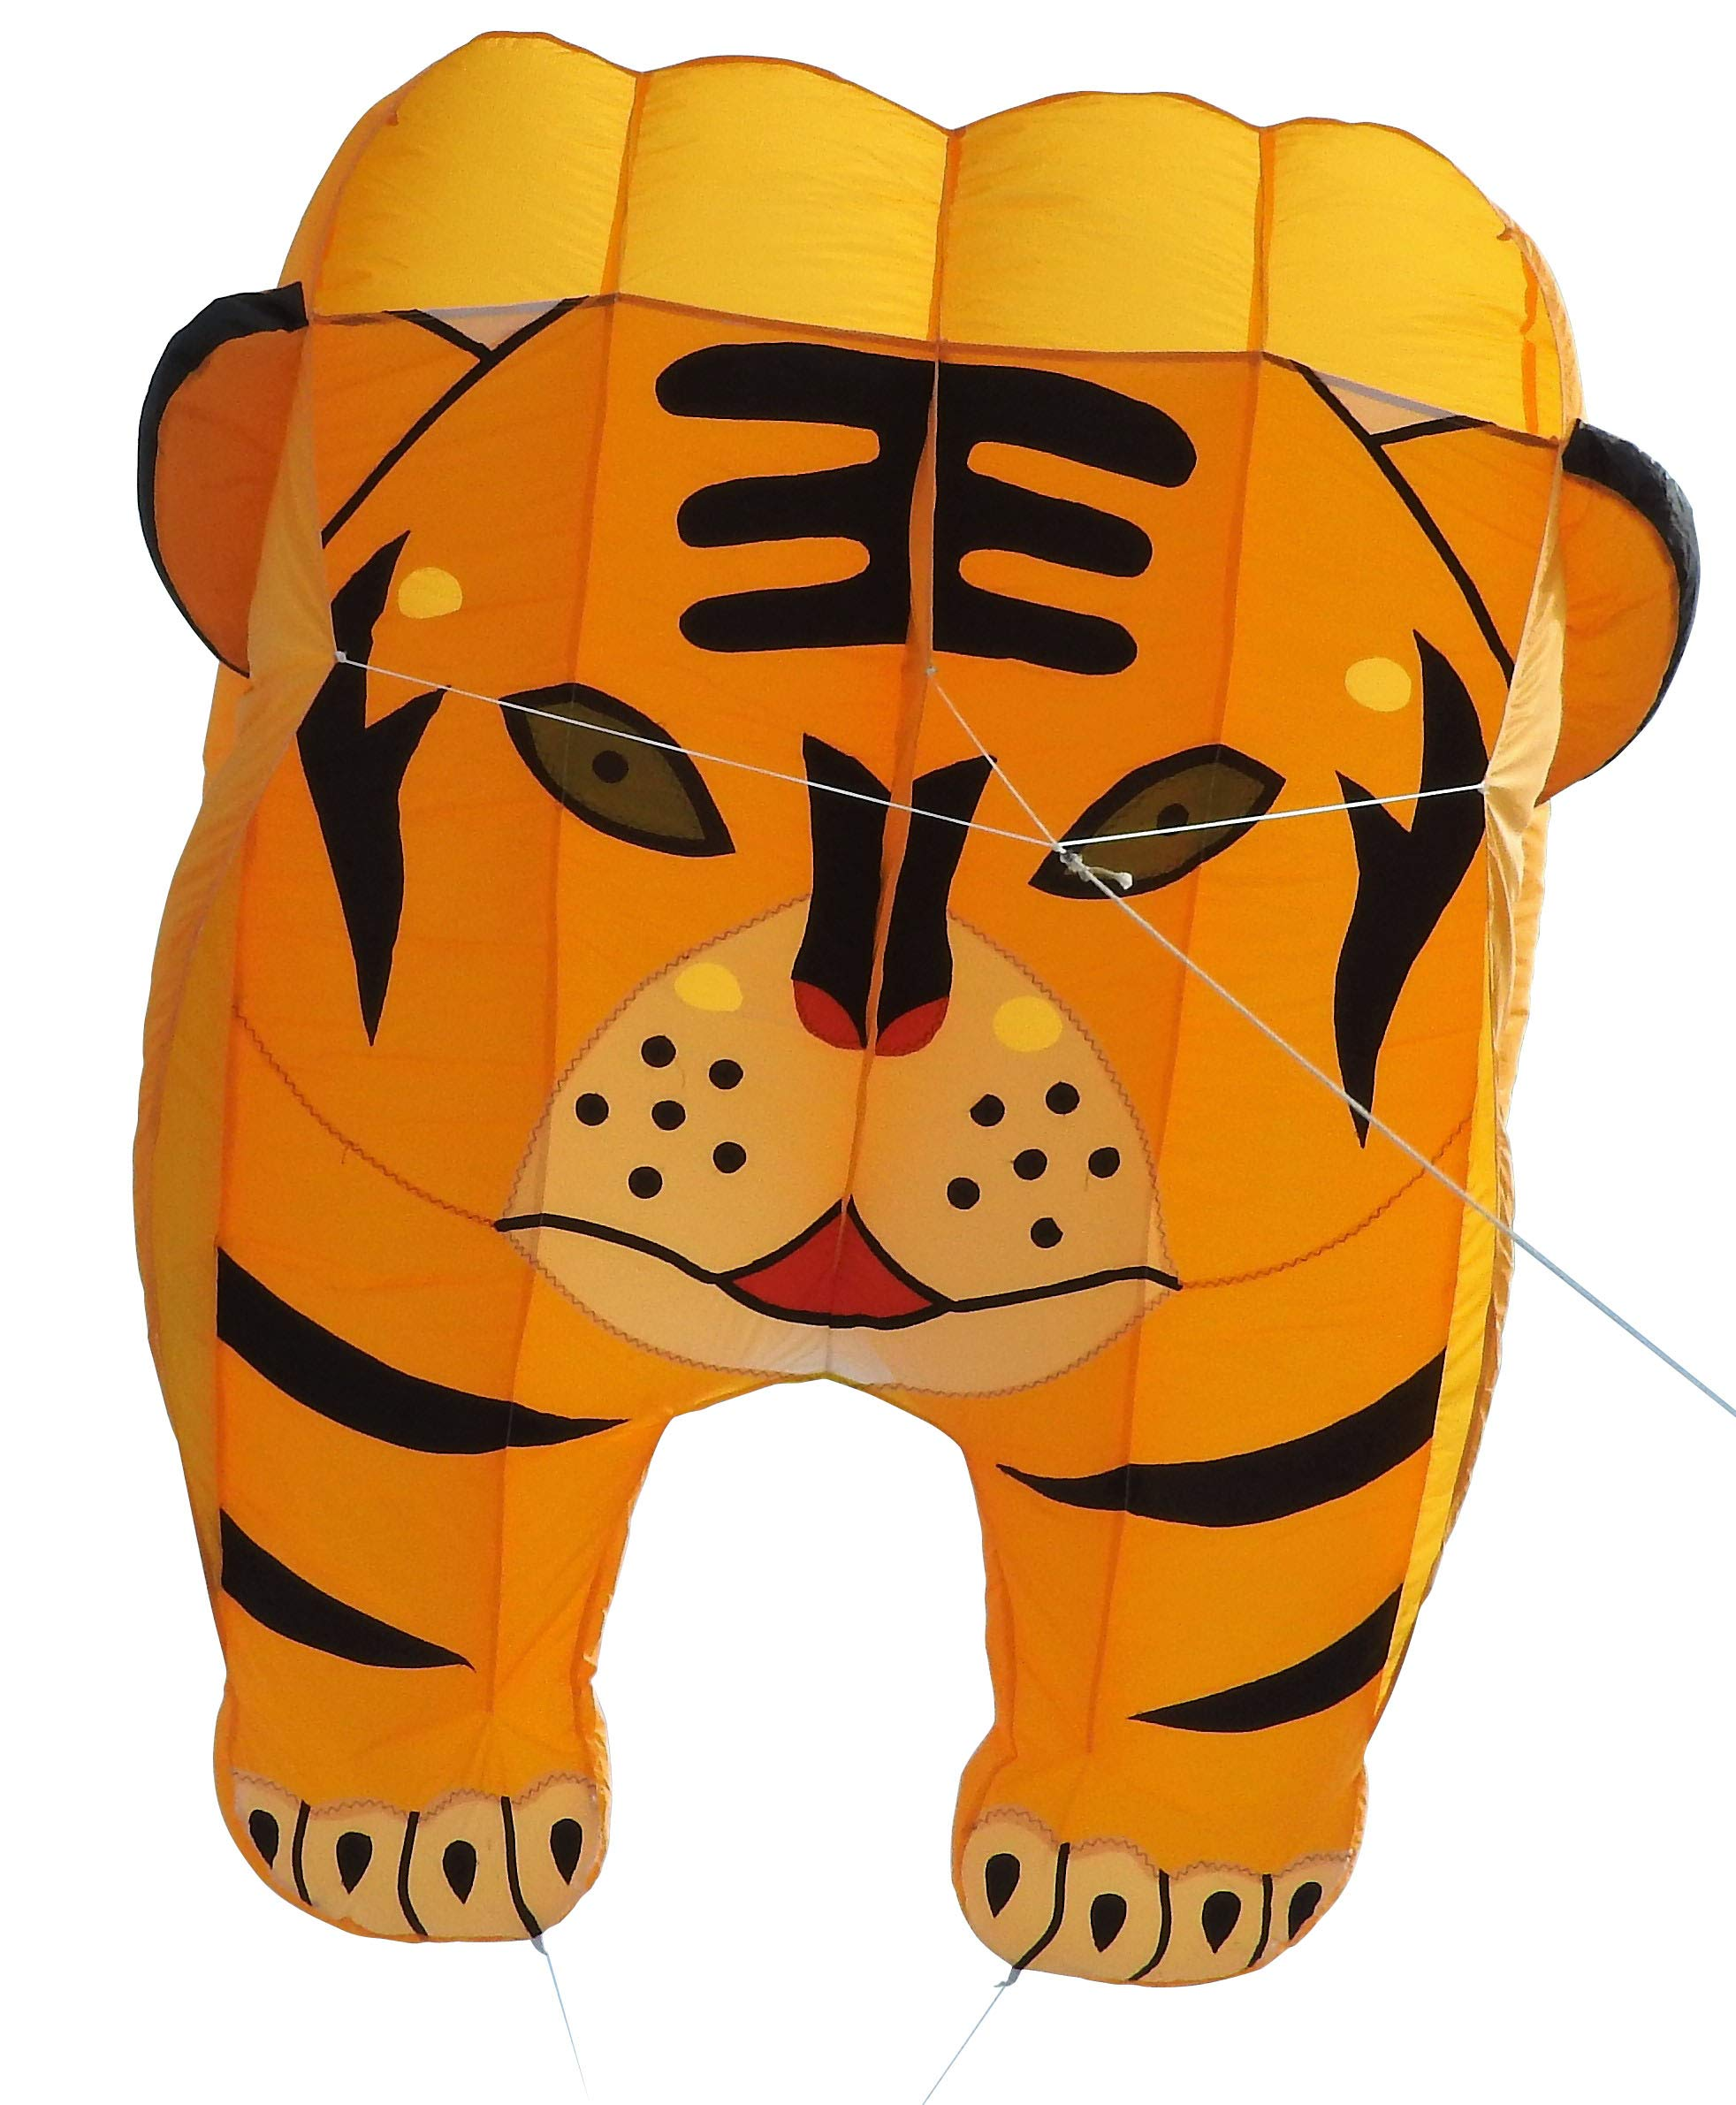 Fullfar Tiger 3D Kite for Adult, Soft Nylon Material Parafoil Kite for Kids. Easy to Fly 244×39 inch with Kite String and Backpack, Perfect Kite for The Beach or Park. by Fullfar